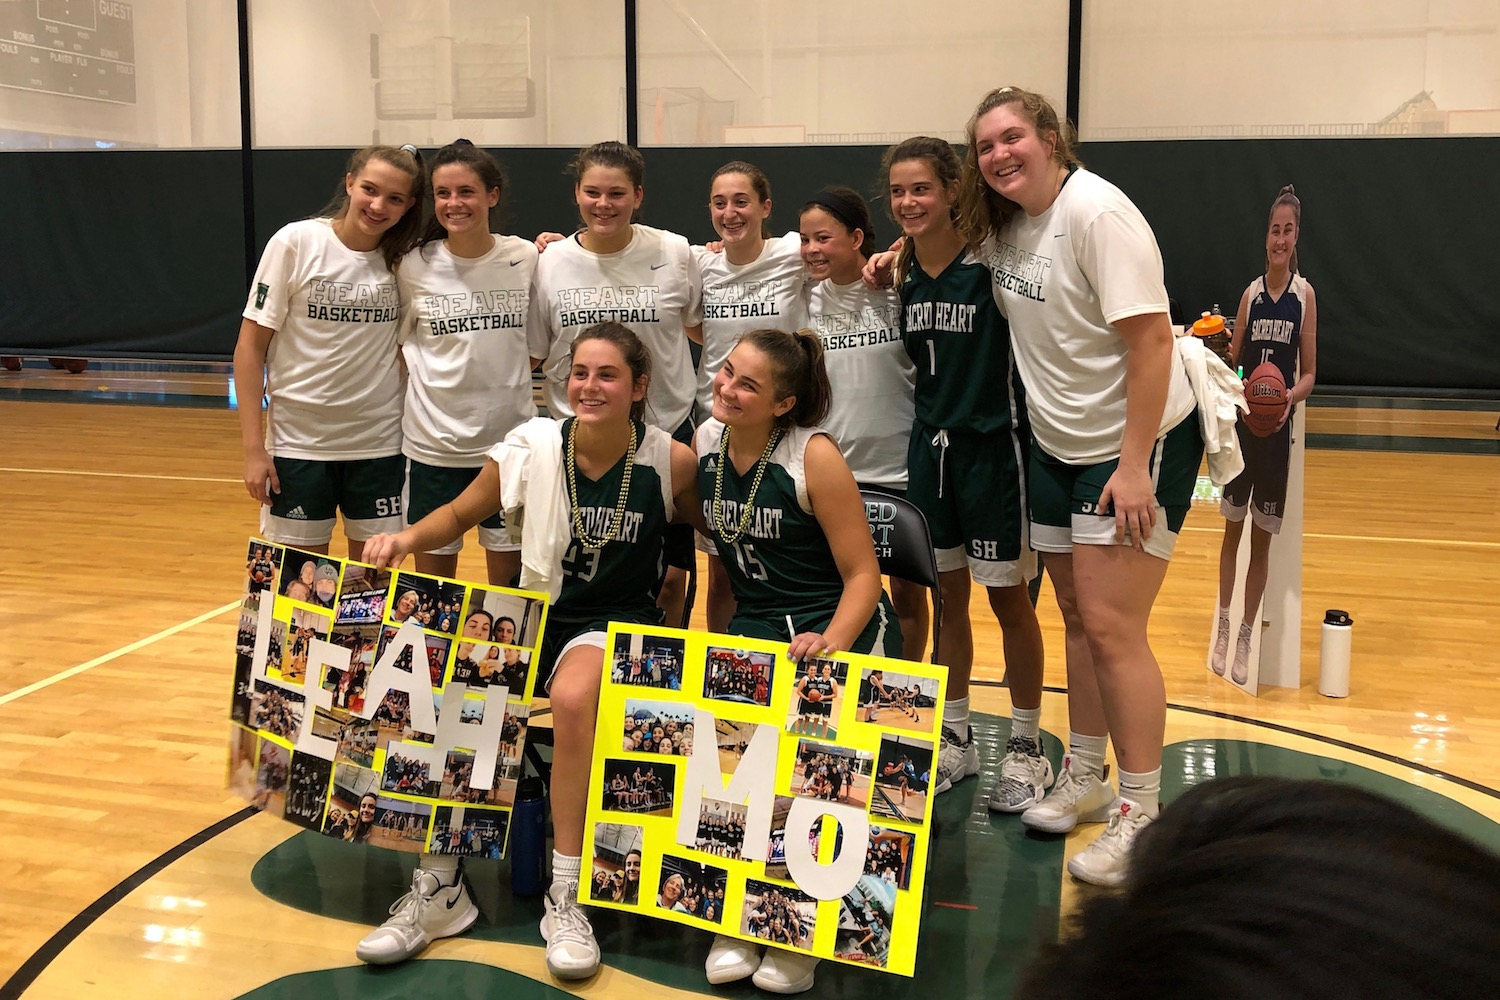 The varsity basketball underclassmen honor captains Morgan Smith '20 and Leah Atkins '20 during their senior day game.